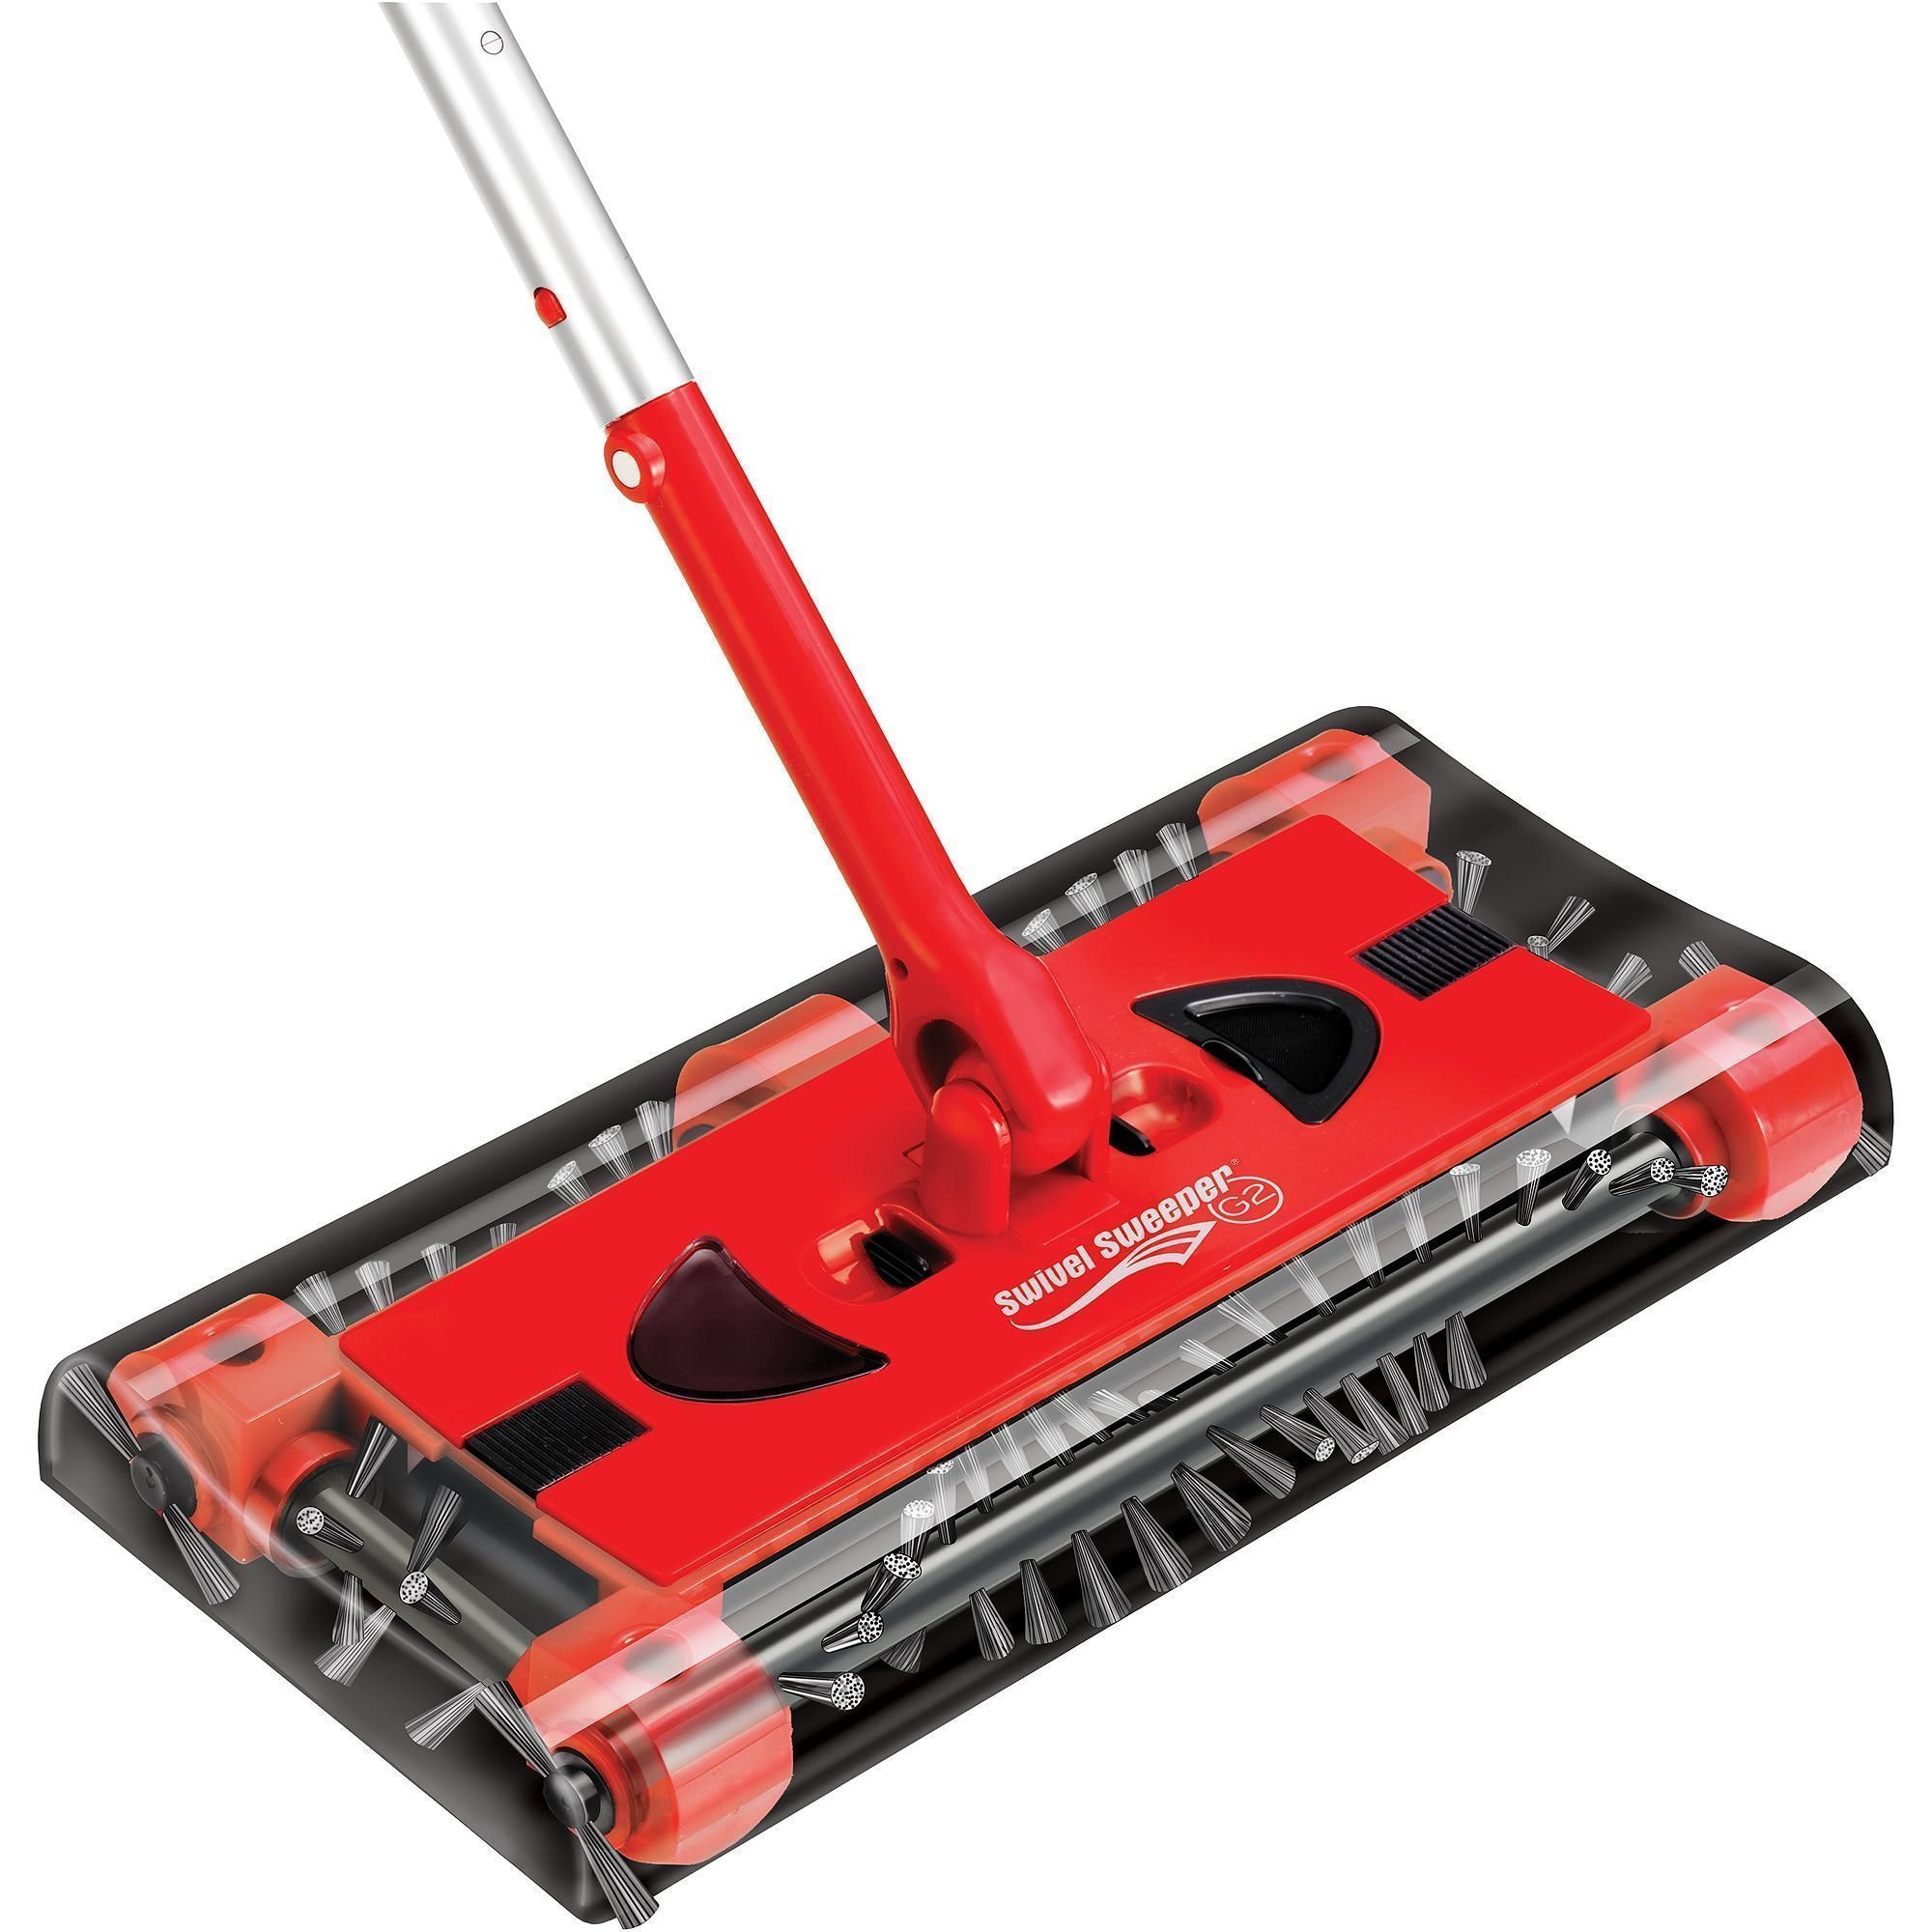 Электровеник Swivel Sweeper G3 (Свивел Свипер)